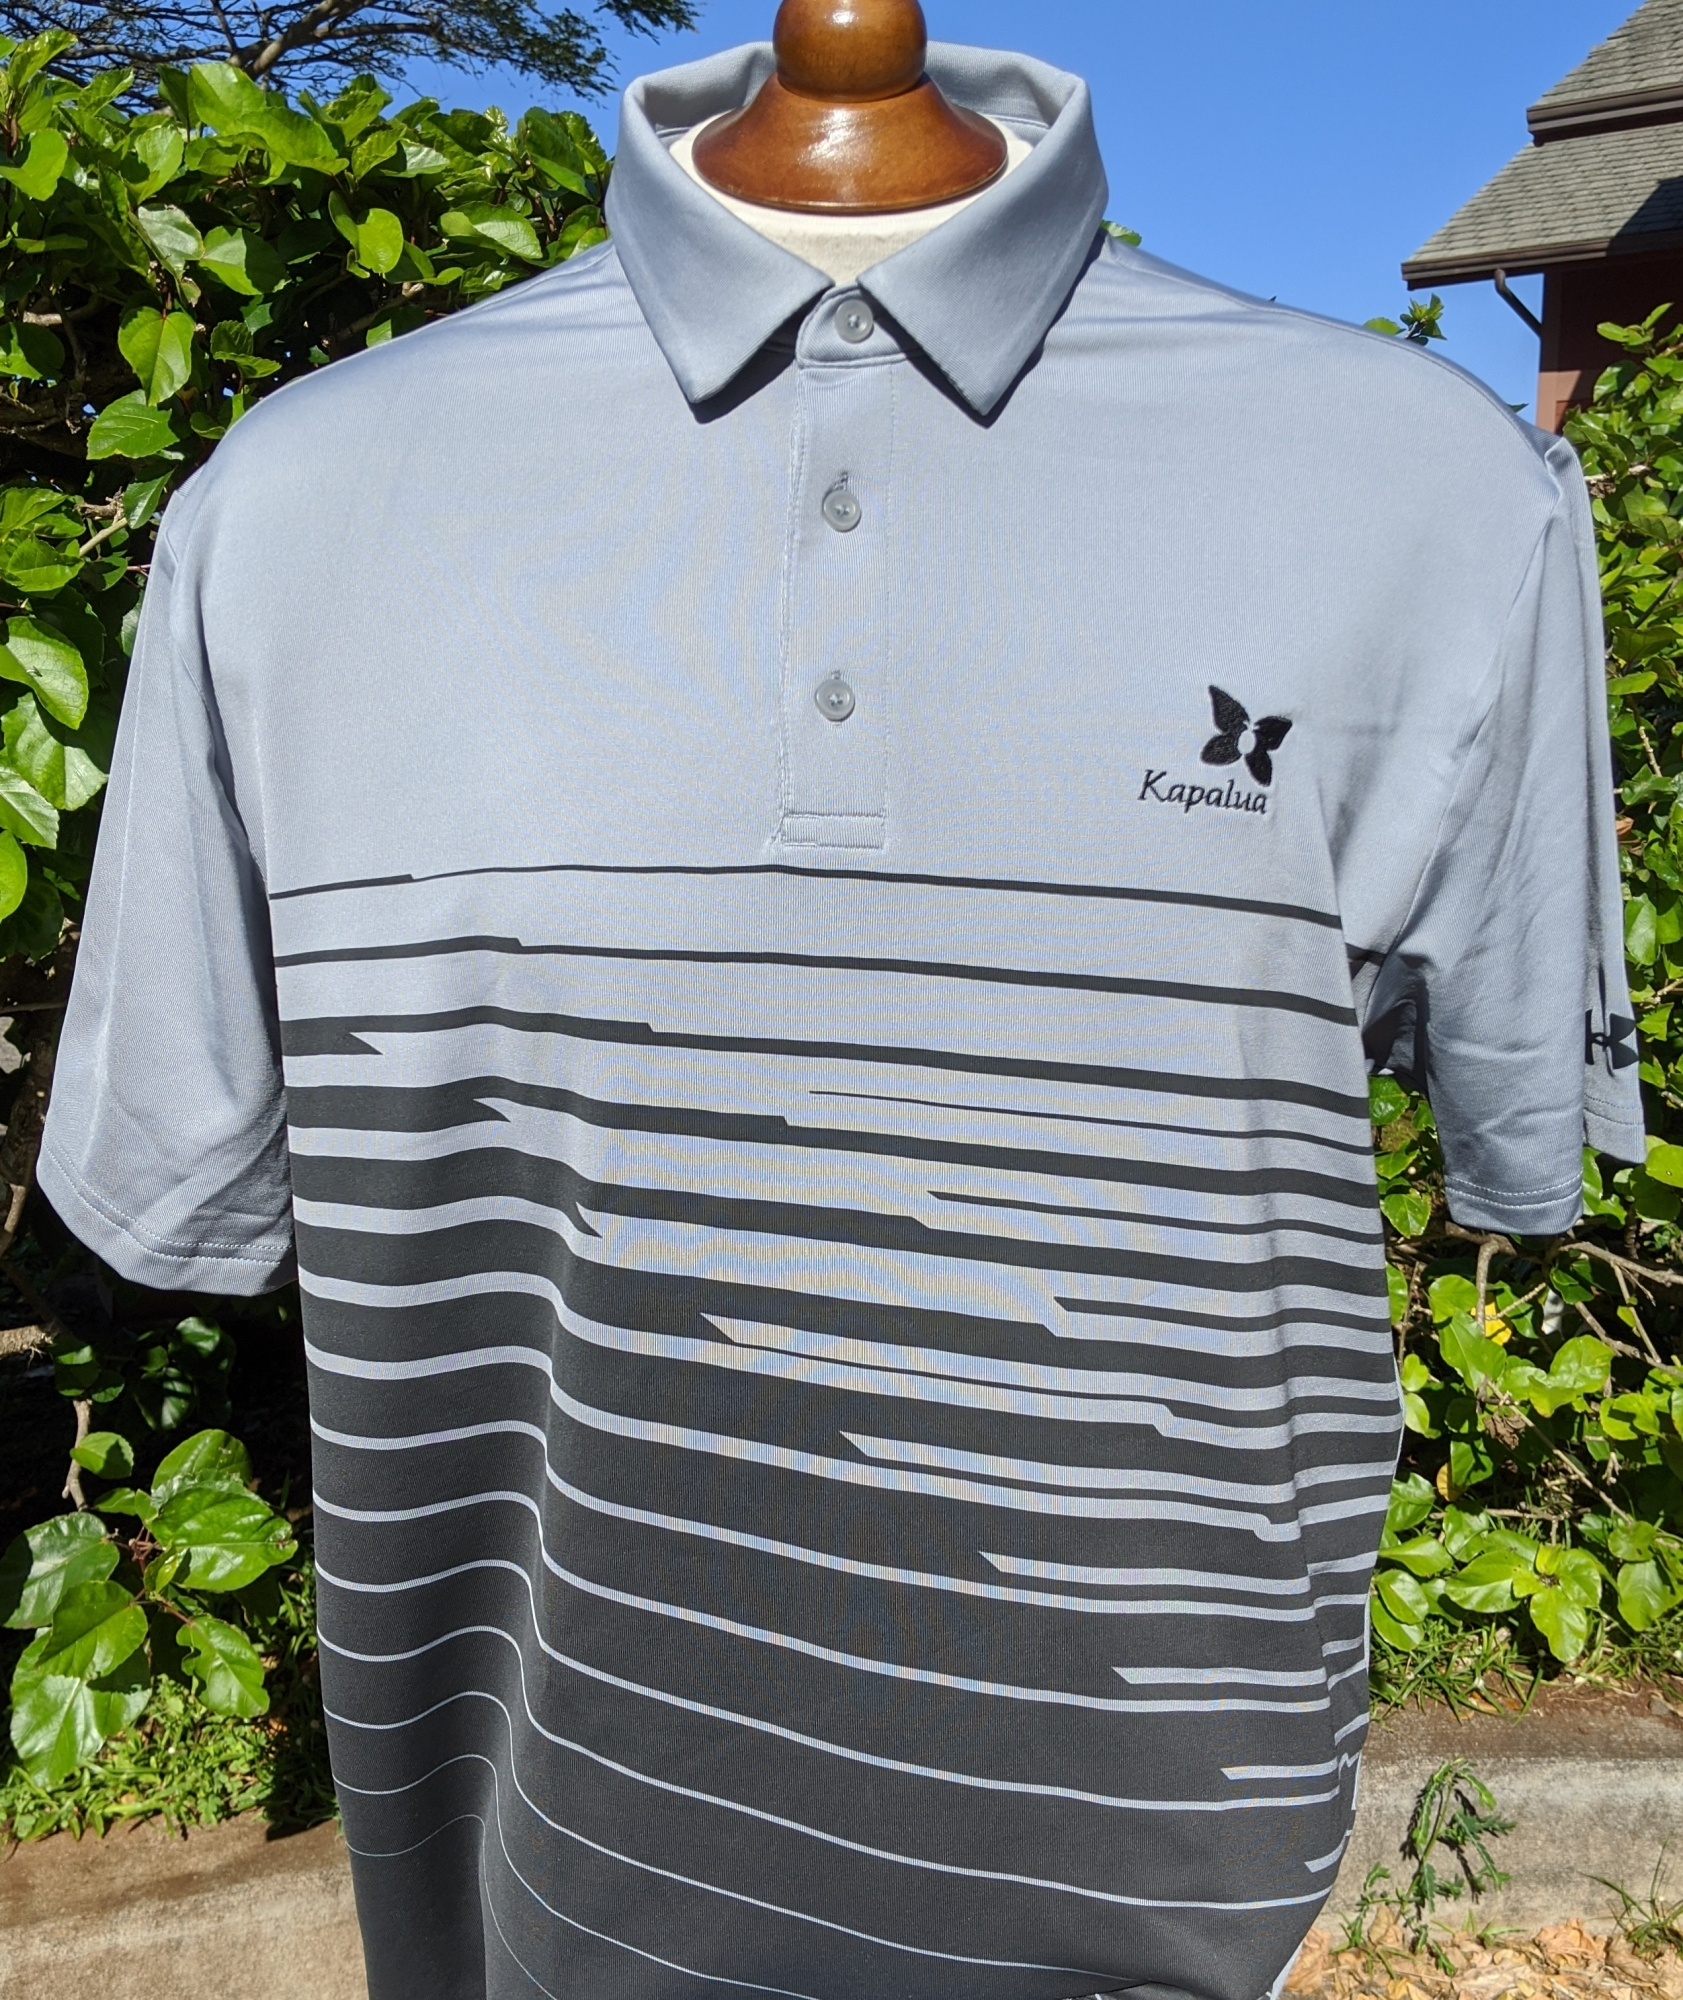 Under Armour Men's Polo Shirt - Gray with Black Stripes NO XL AVAILABLE